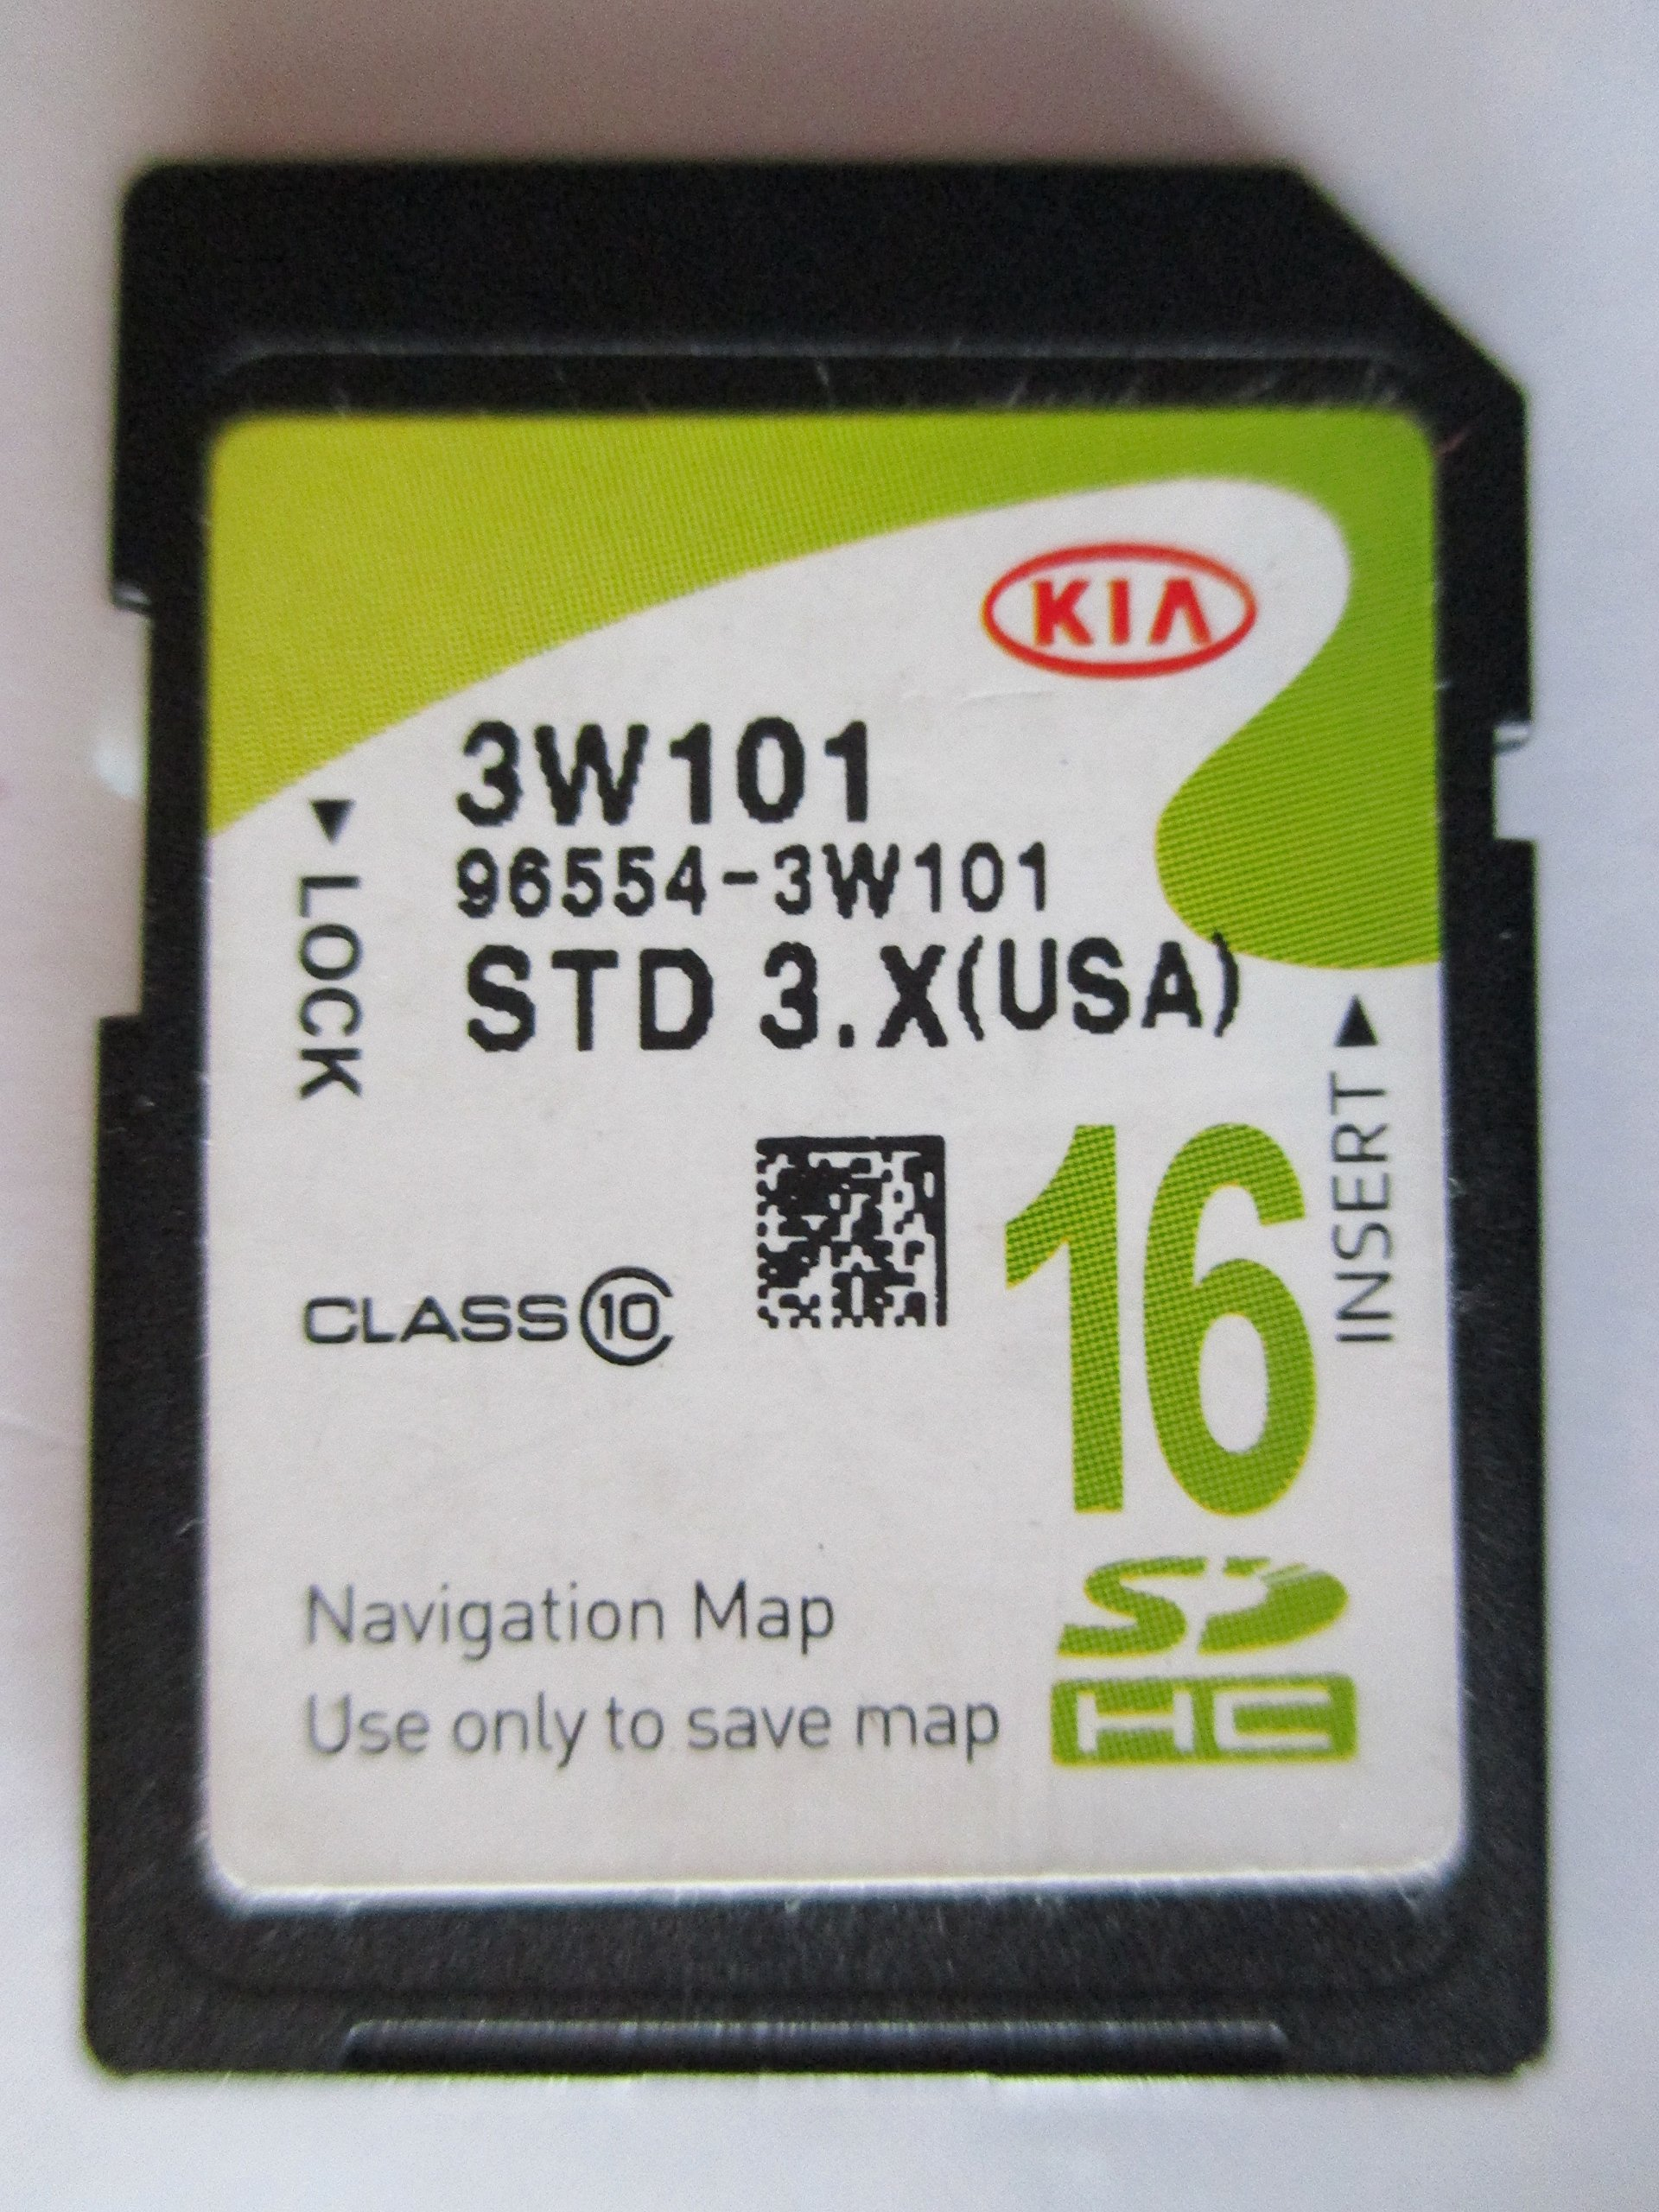 3W101 2014 2015 2016 KIA SPORTAGE Navigation MAP Sd Card ,GPS UPDATE , U.S.A OEM PART # 96554-3W101 3.X 16GB